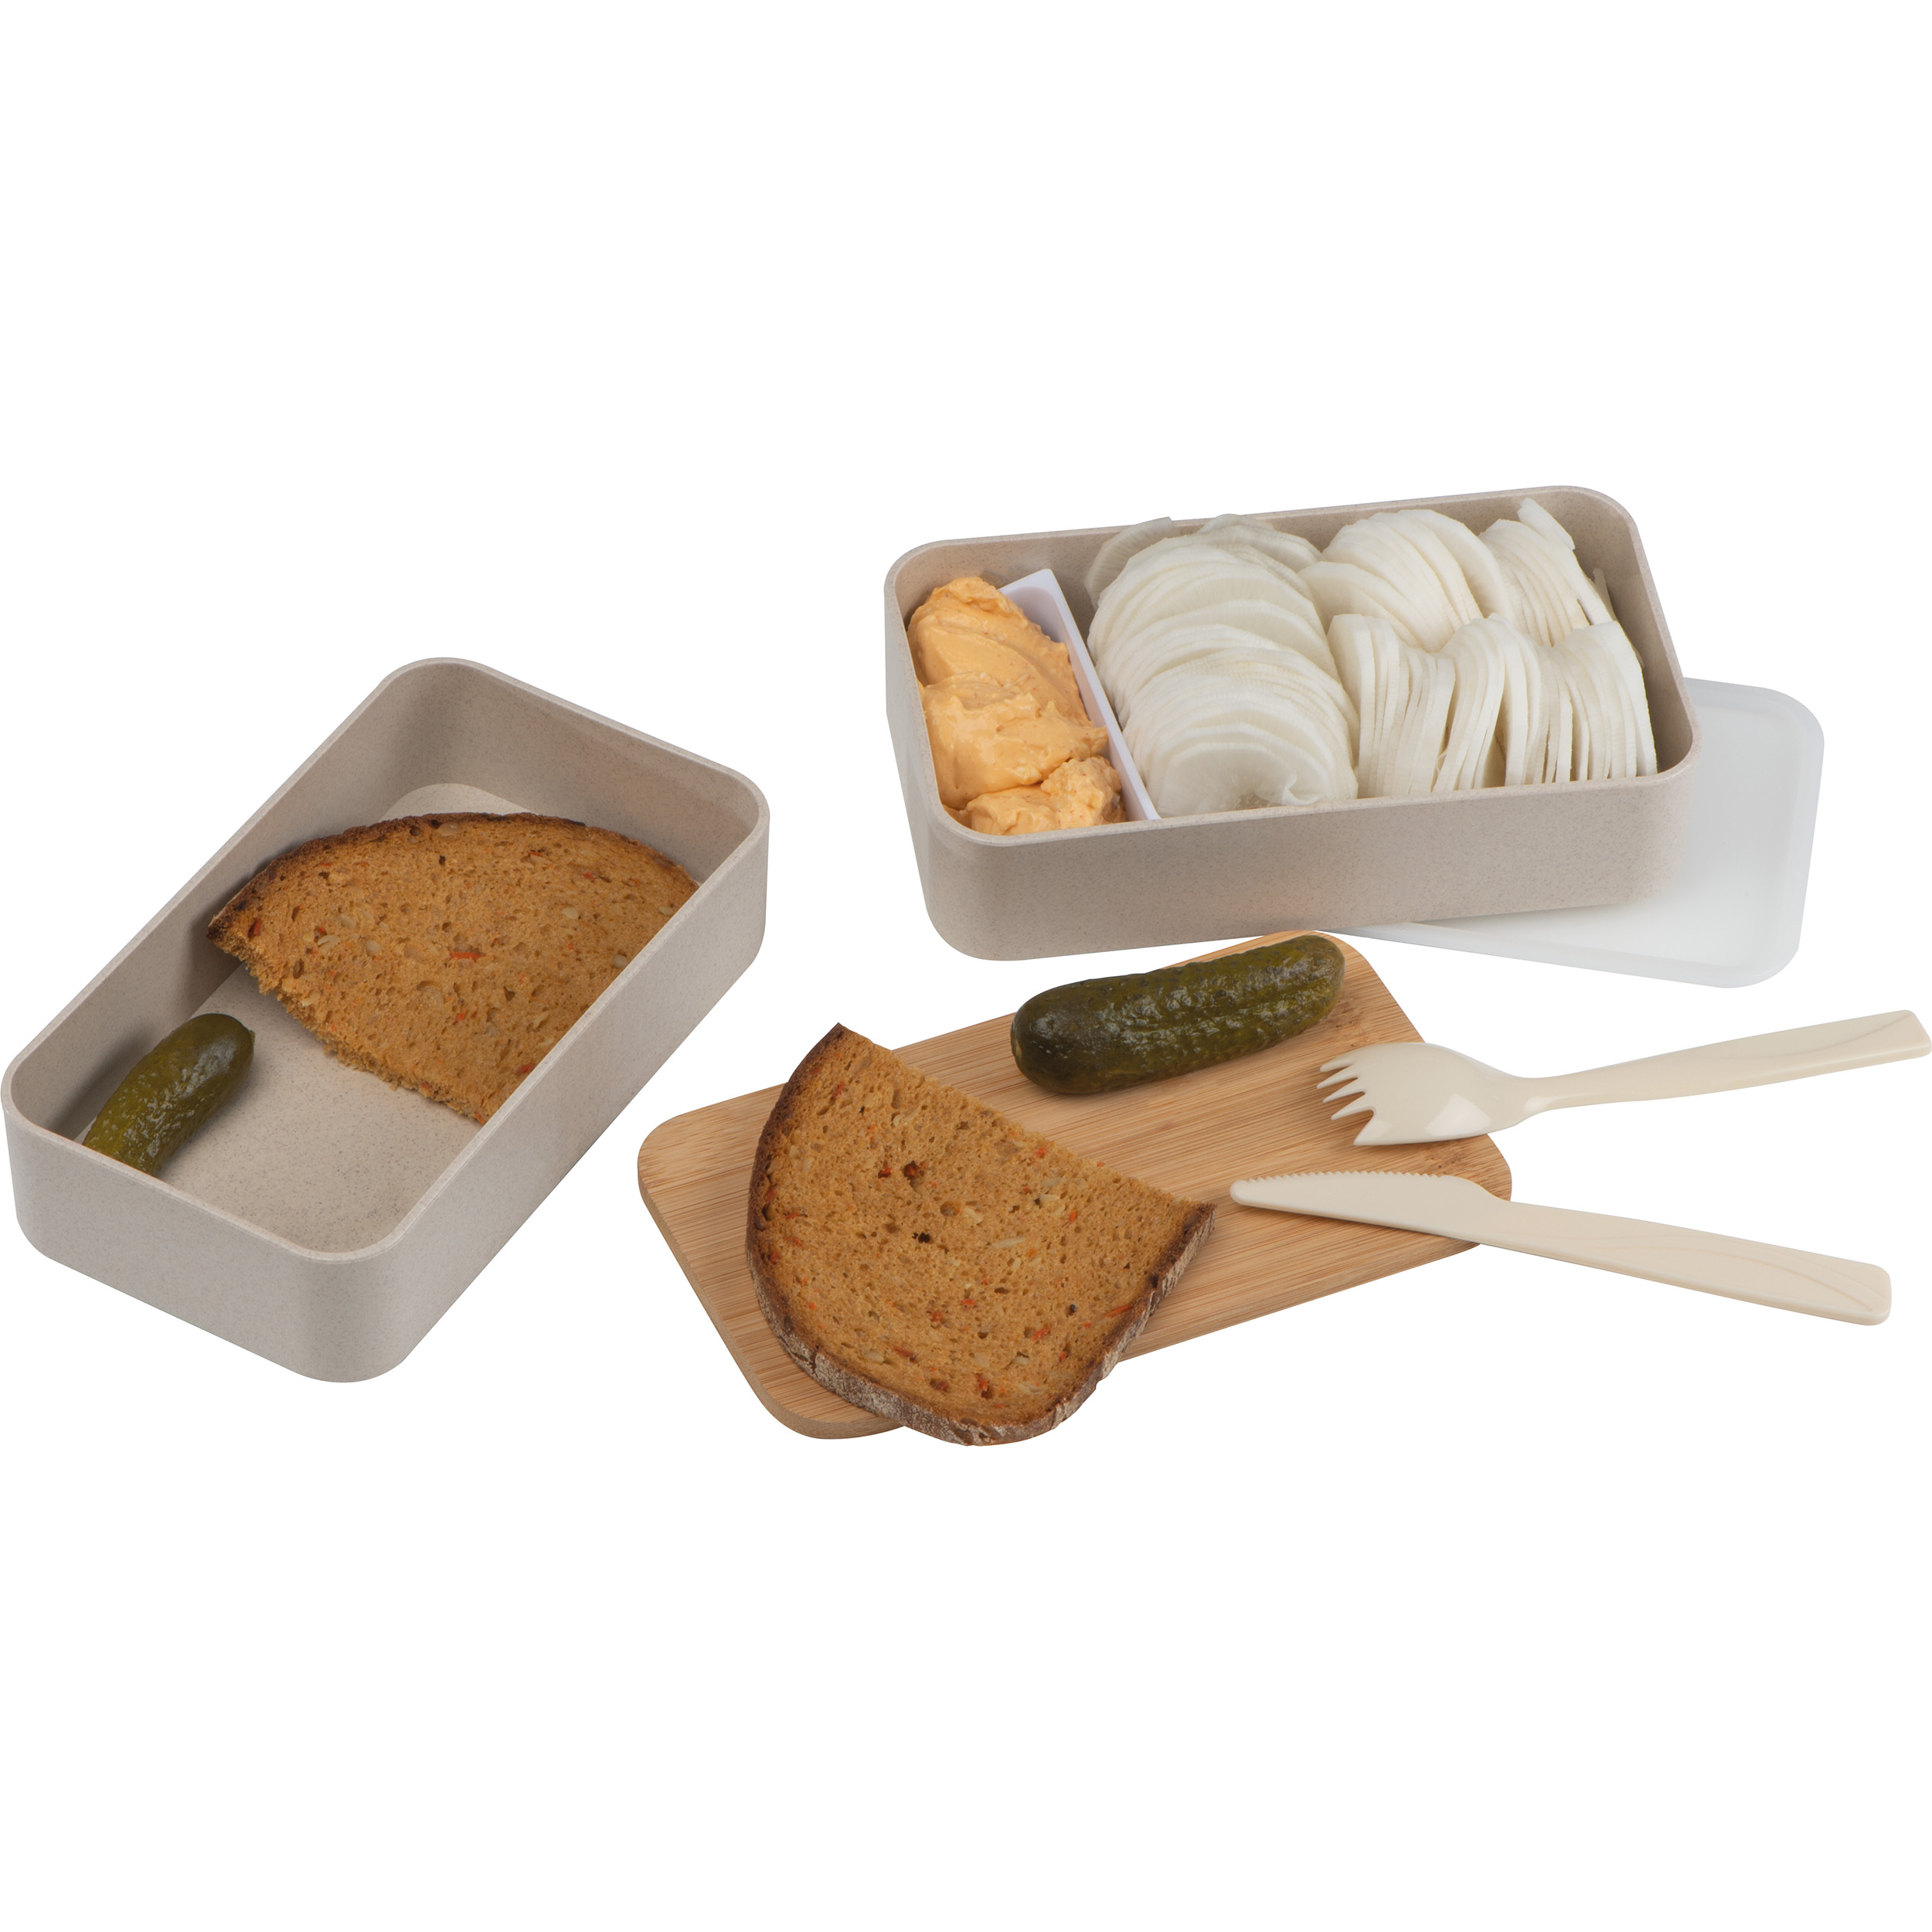 2-storey lunch box with cutlery and clasp